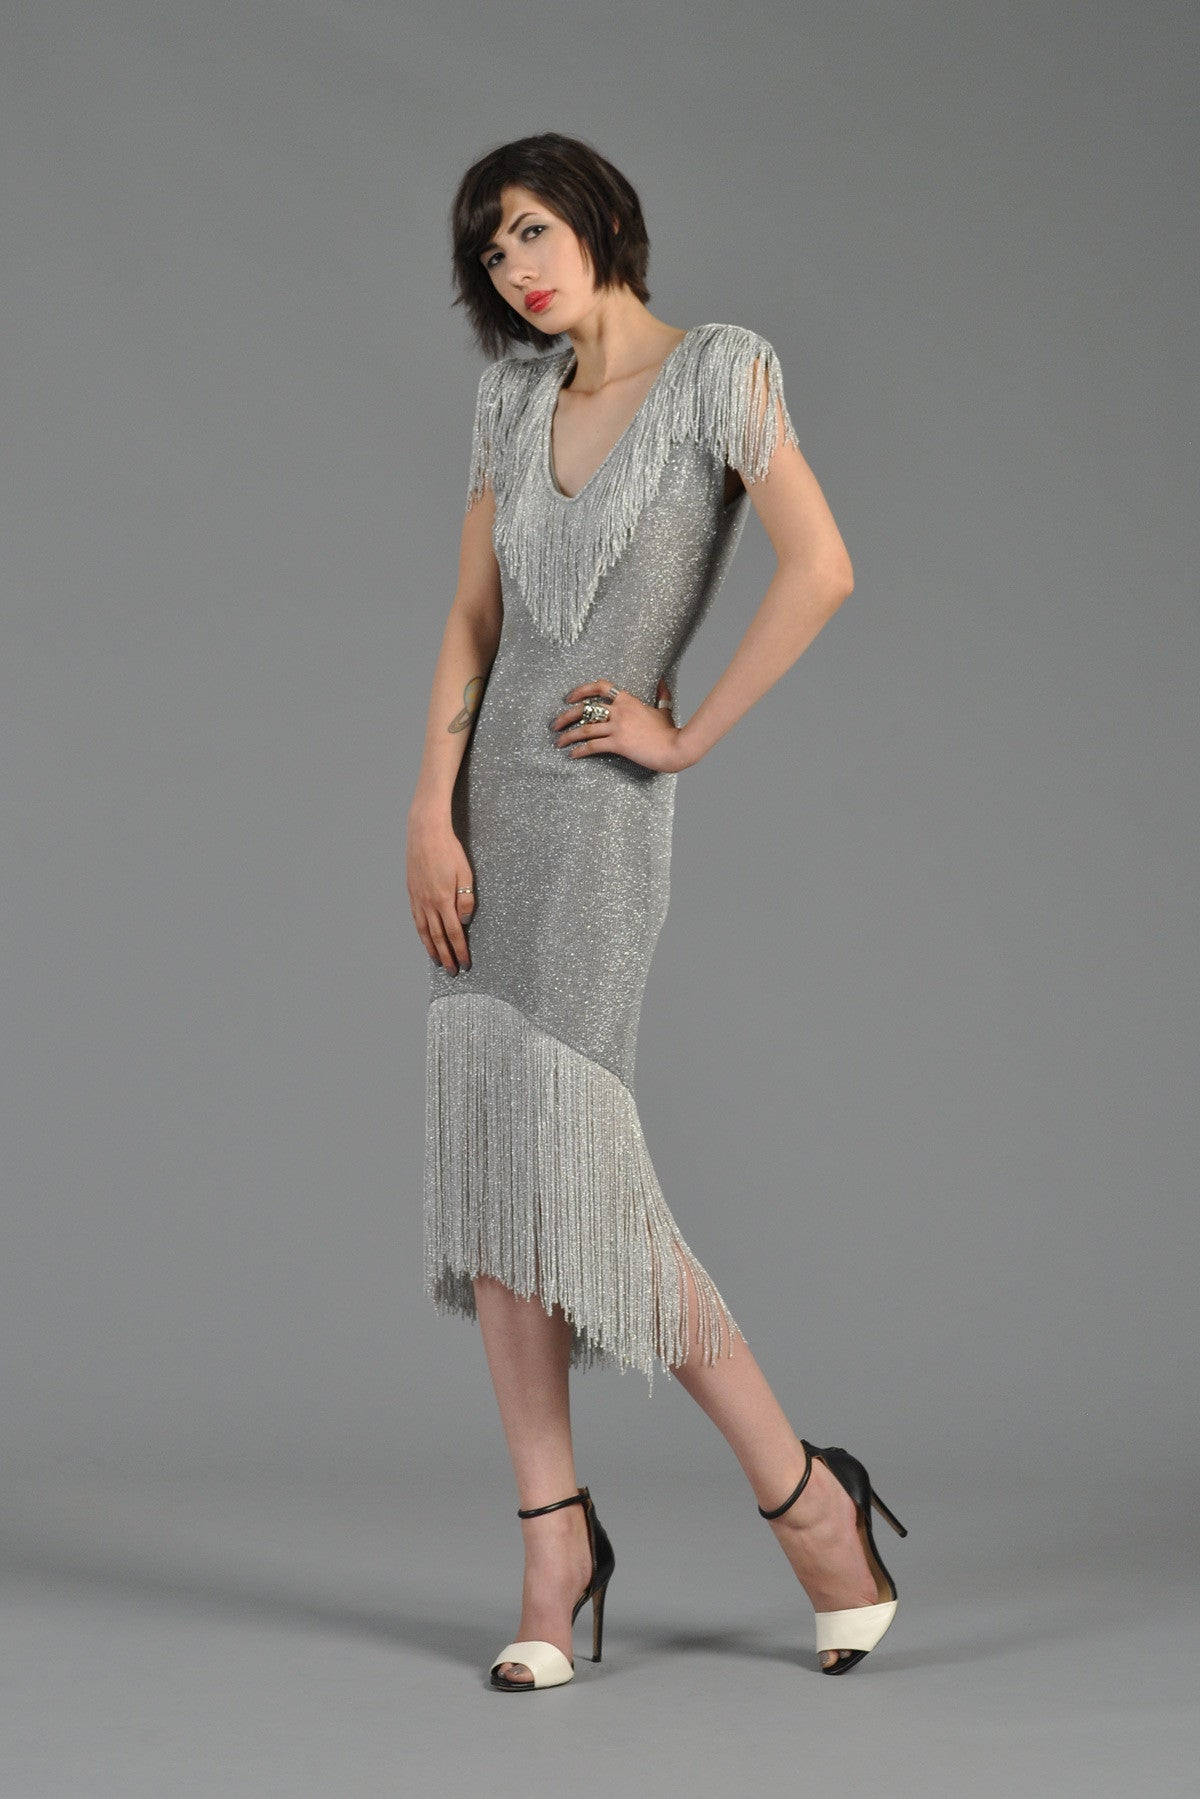 Metallic Silver Bodycon Knit Dress With Fringe Bustown